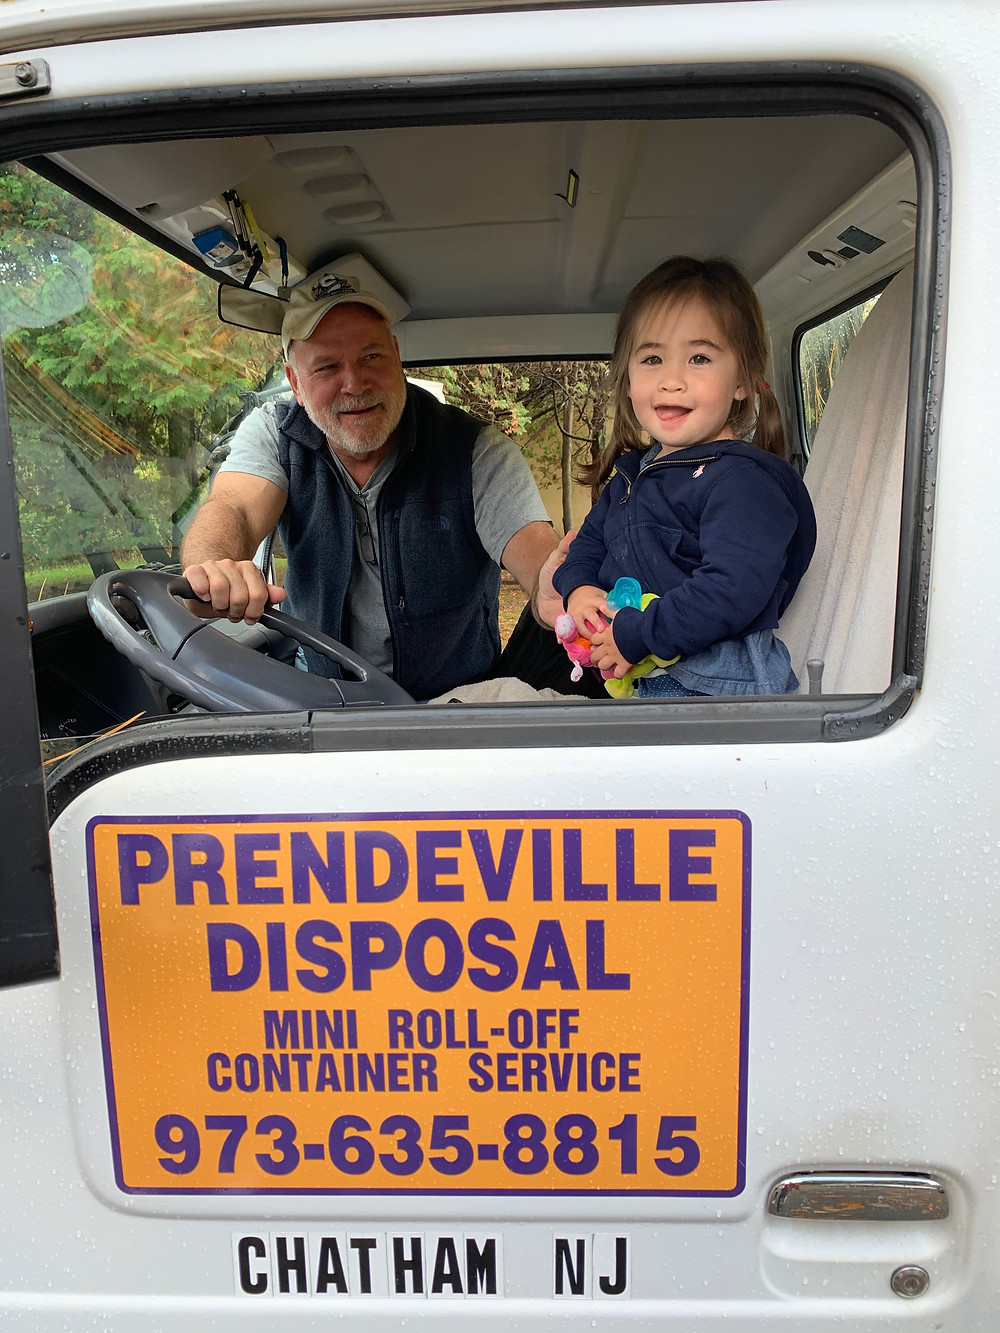 Sweet girl in a Prendeville Disposal truck in Morristown.